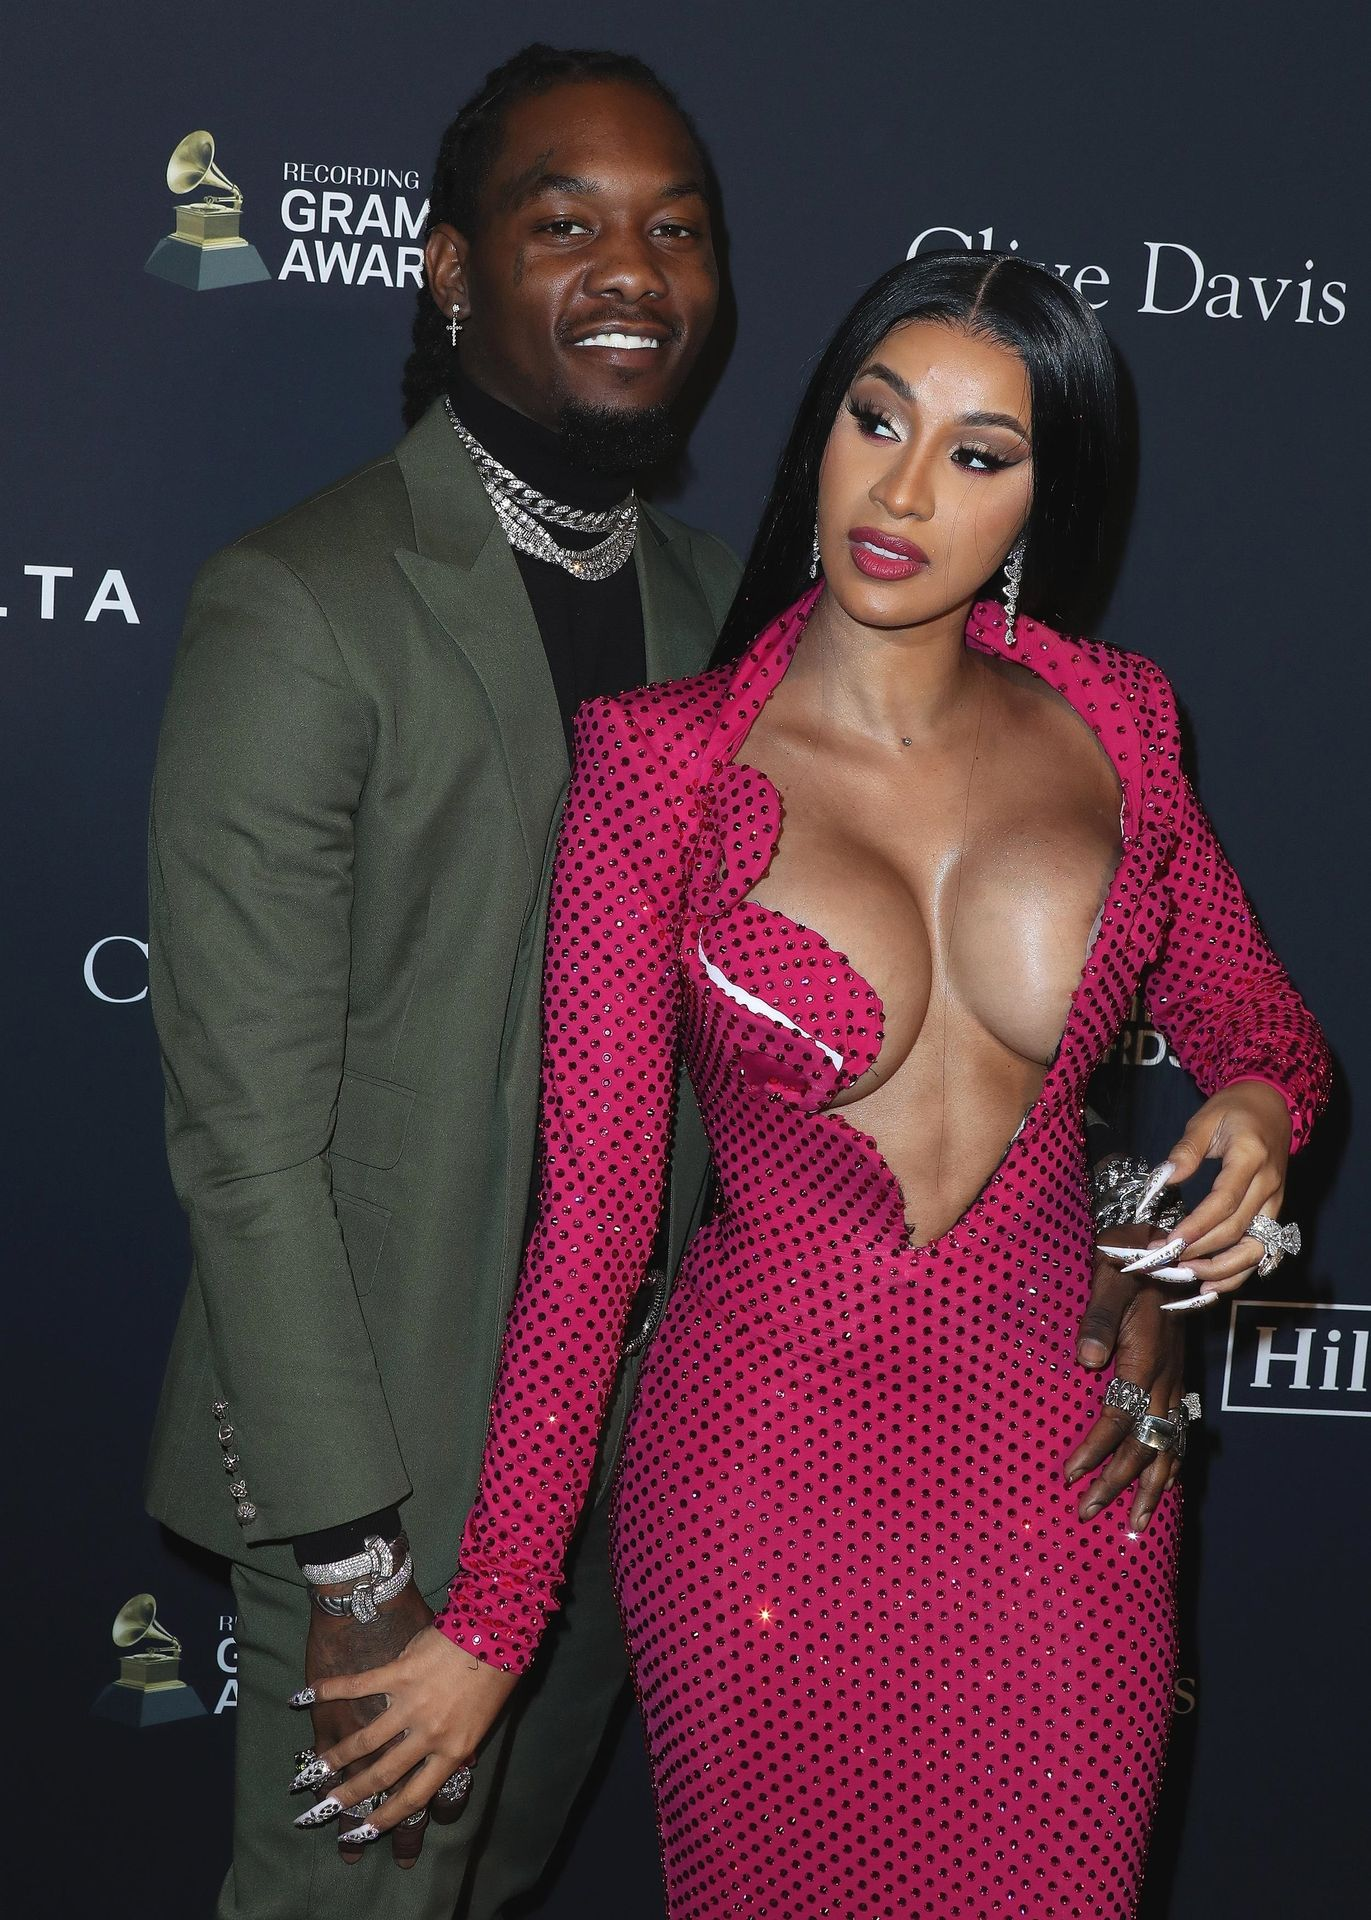 Offset Covers Cardi B's Boobs To Avoid Wardrobe Malfunction At Clive Davis Pre Grammy Party 0036